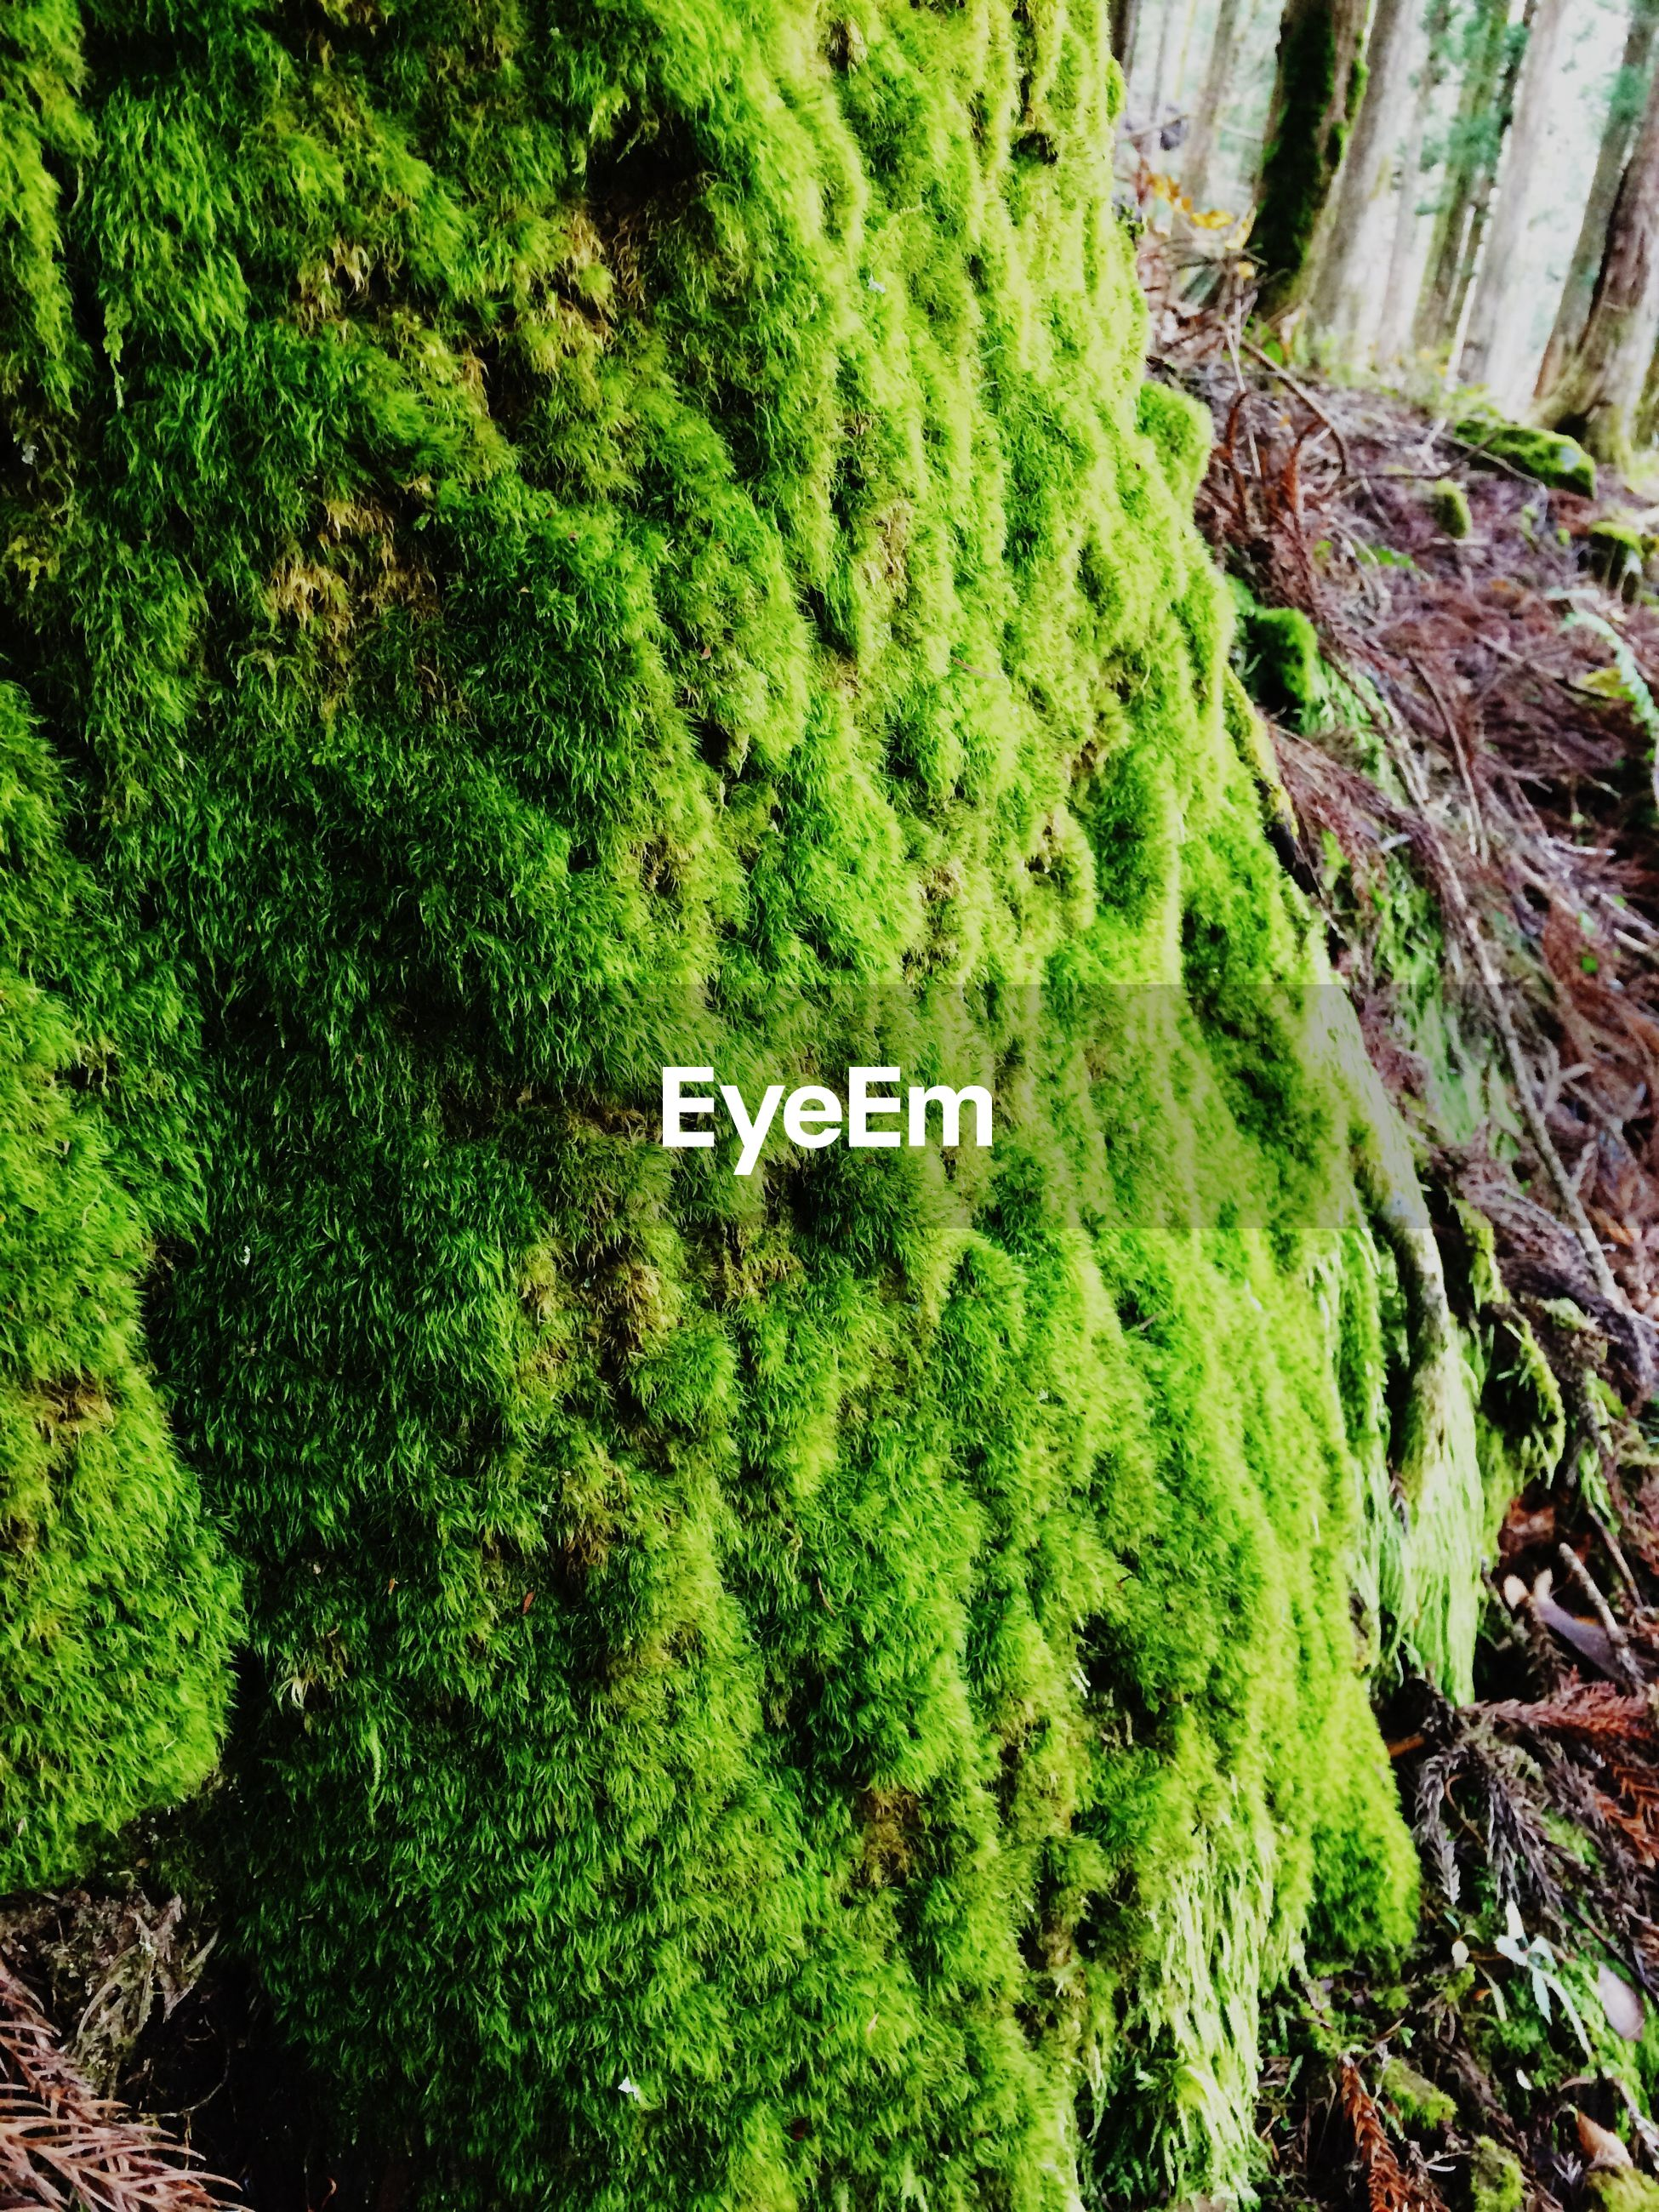 green color, growth, plant, nature, tree, moss, grass, high angle view, tranquility, forest, beauty in nature, day, outdoors, lush foliage, no people, green, field, growing, tranquil scene, leaf